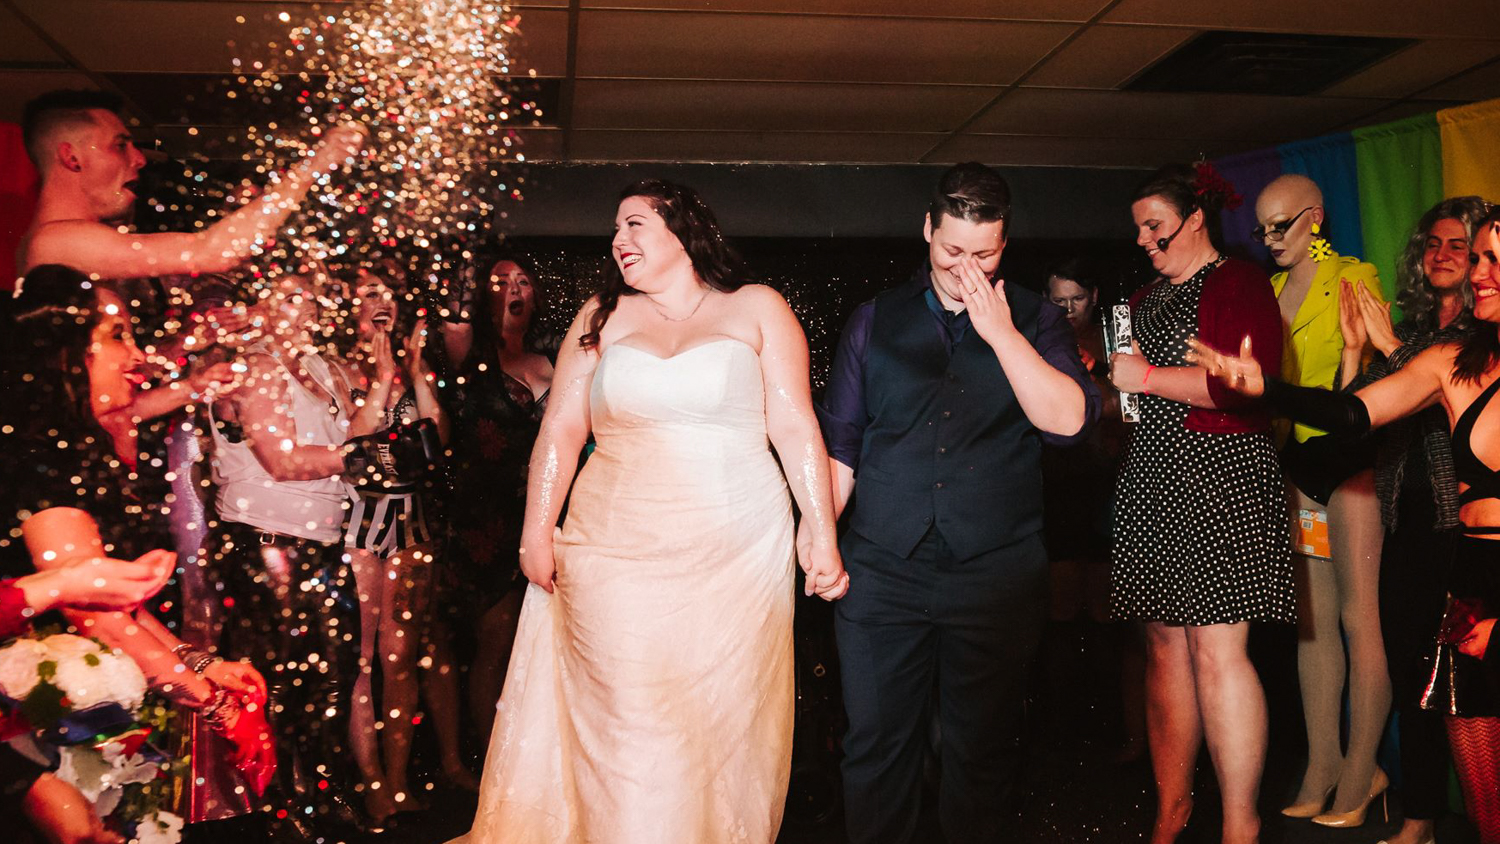 Surprise wedding stuns yellowknife queerlesque audience junglespirit Image collections